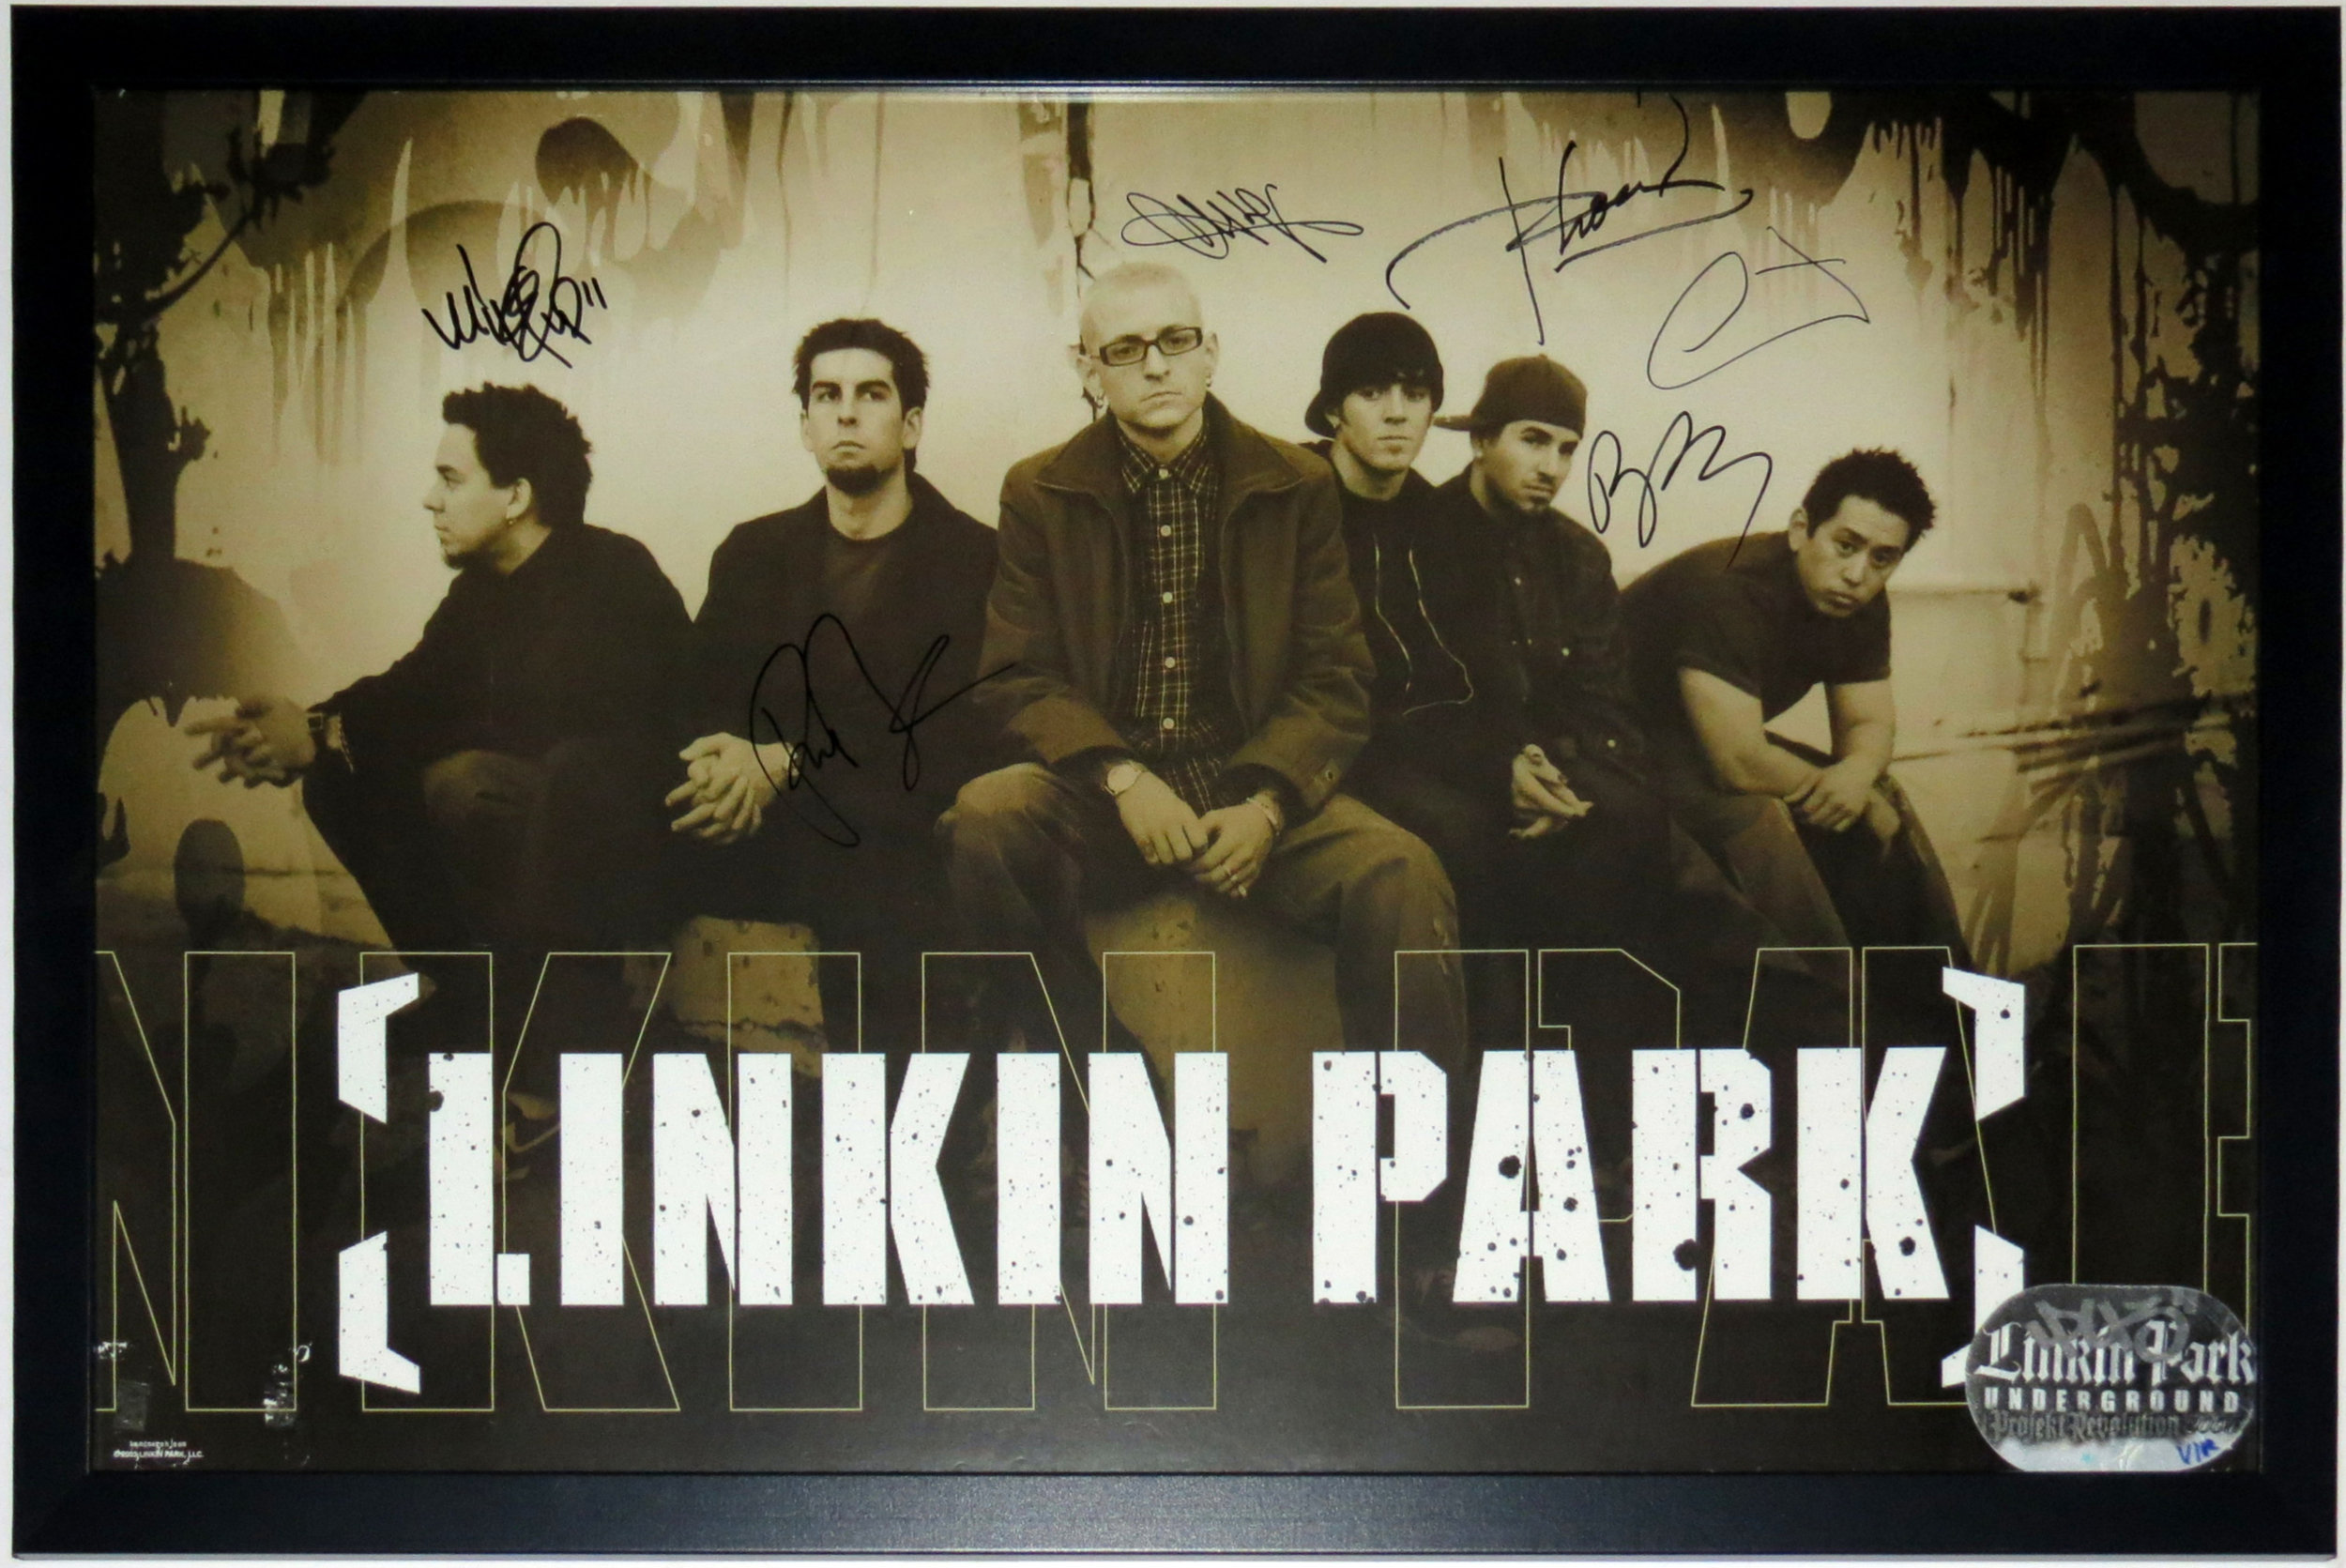 Linkin Park Group Signed 6x 24x36 Tour Poster - JSA COA  Authenticated - Professionally Framed